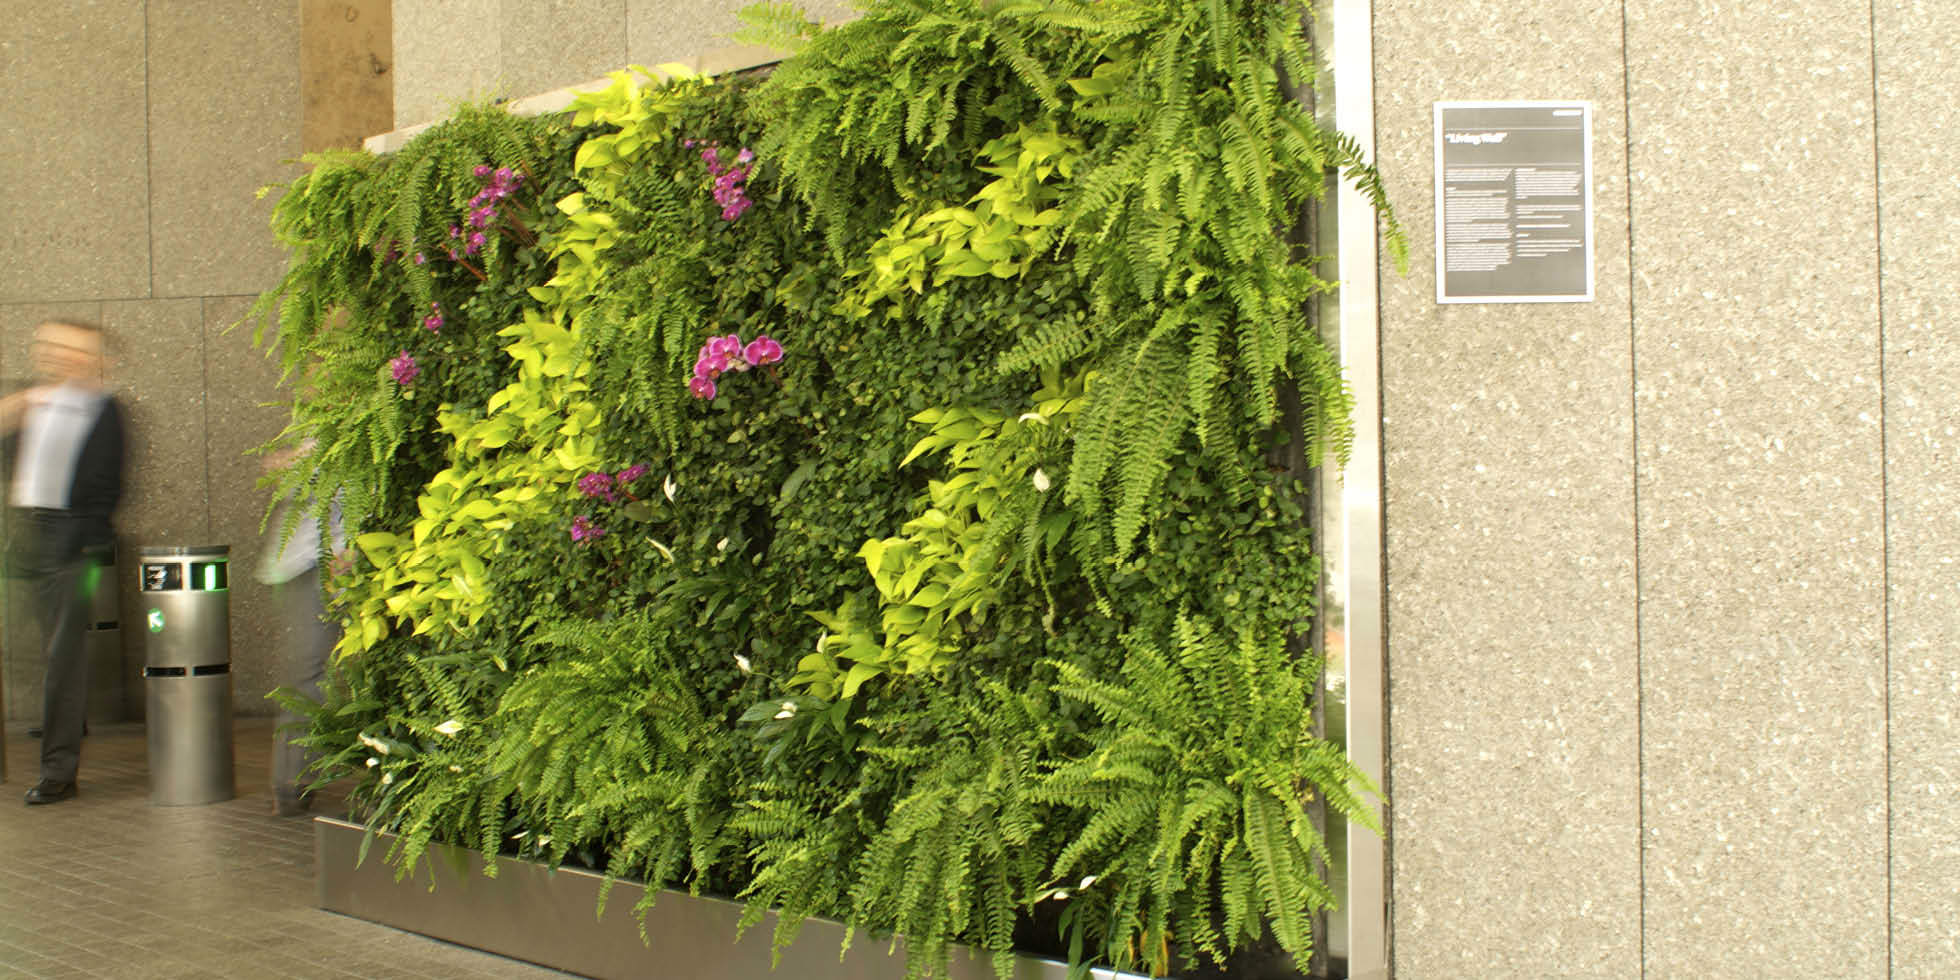 Mckesson Corporation  Living Wall by Habitat Horticulture - View 1